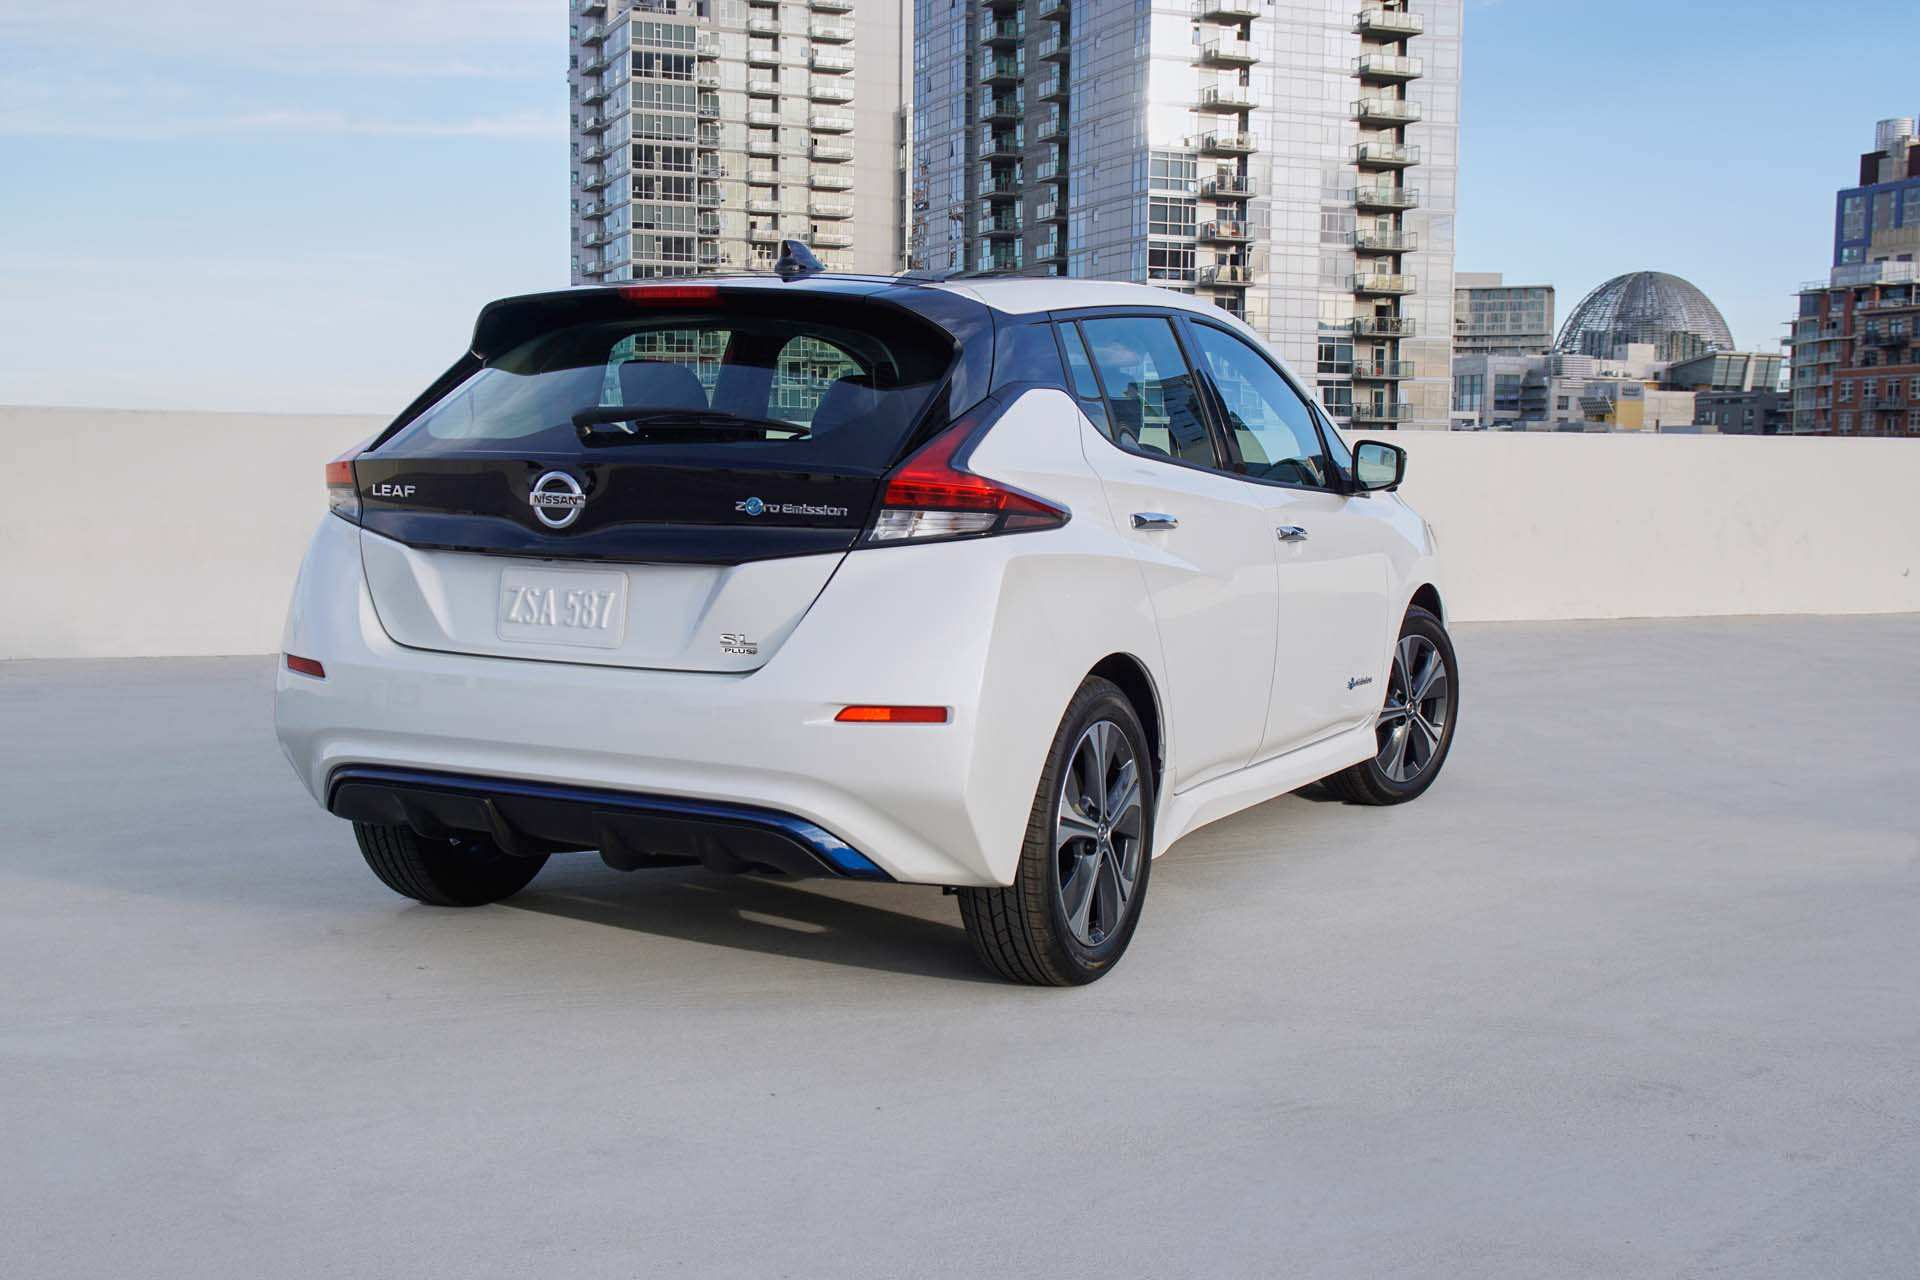 48 The Best 2019 Nissan Leaf Specs And Review